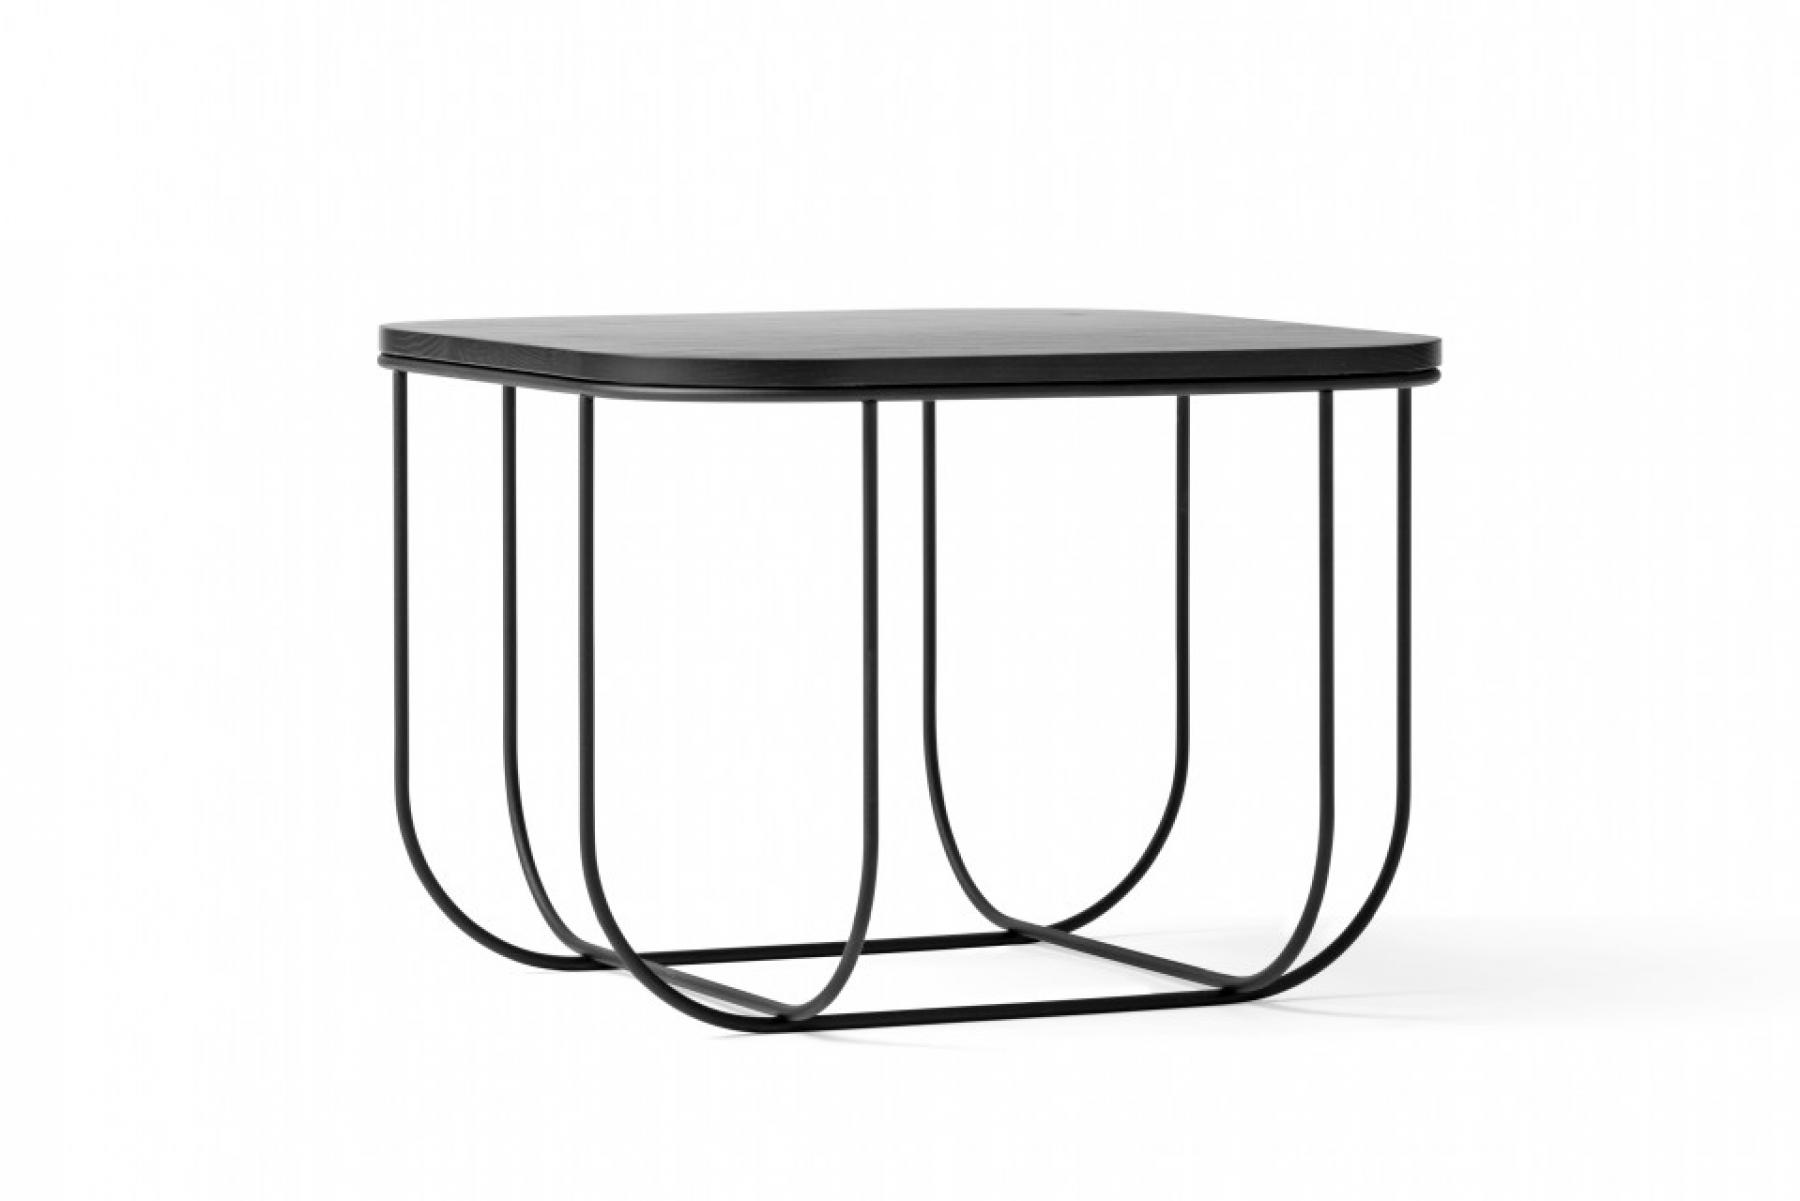 Design item SKEPP Fuwl Cage Table